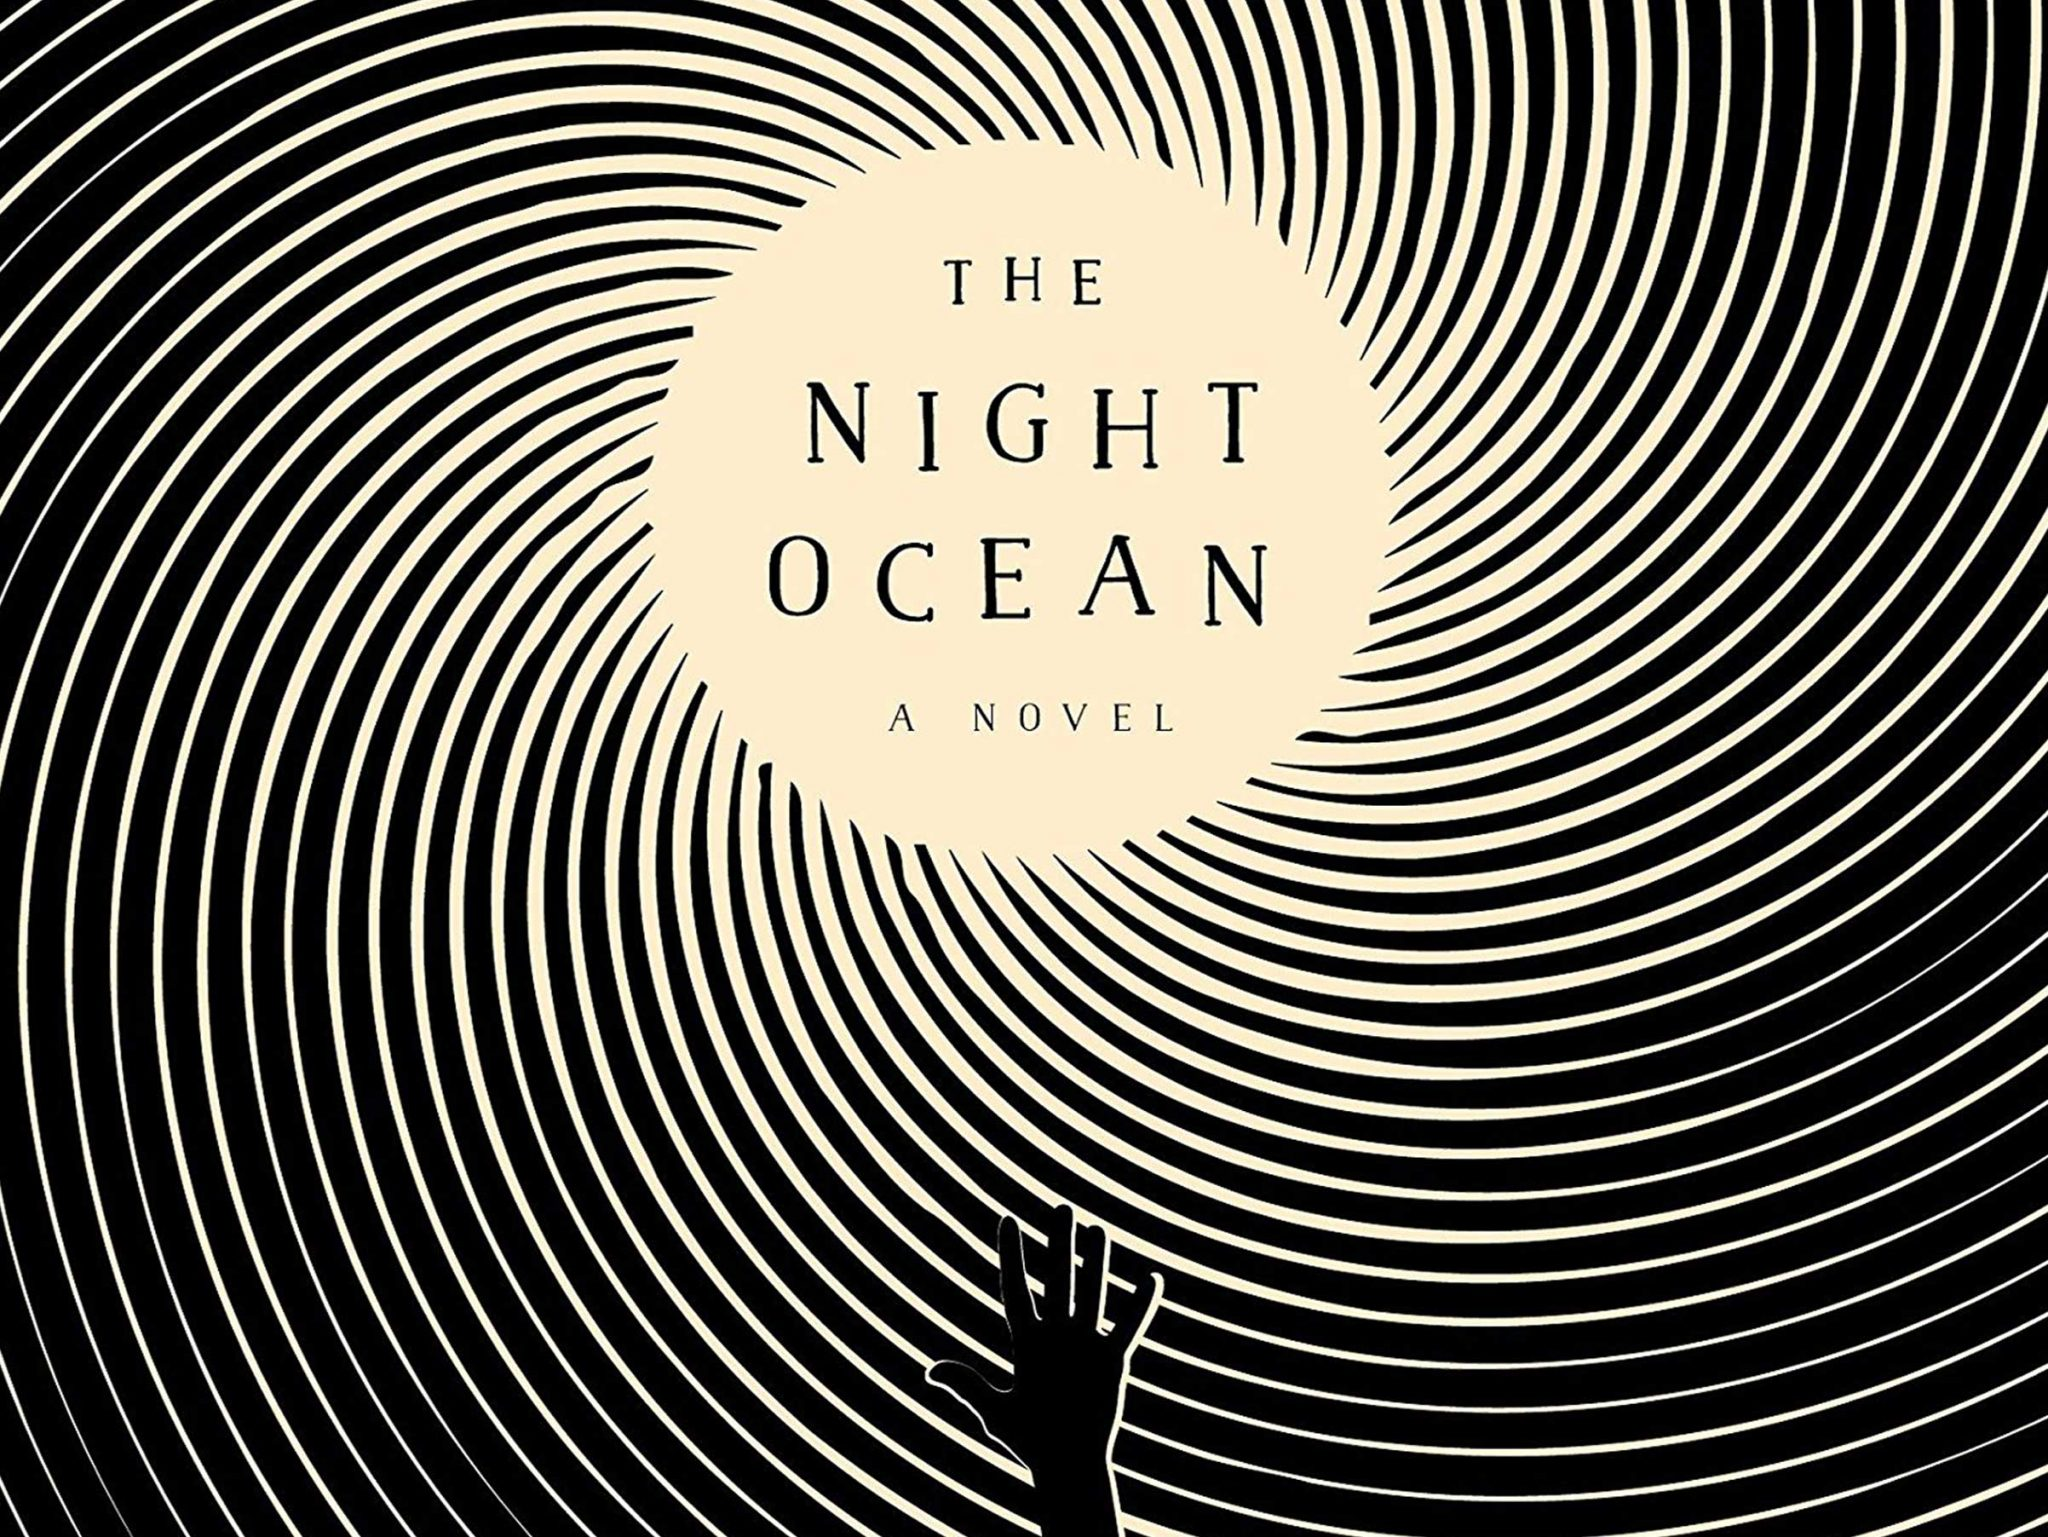 A Reading from The Night Ocean